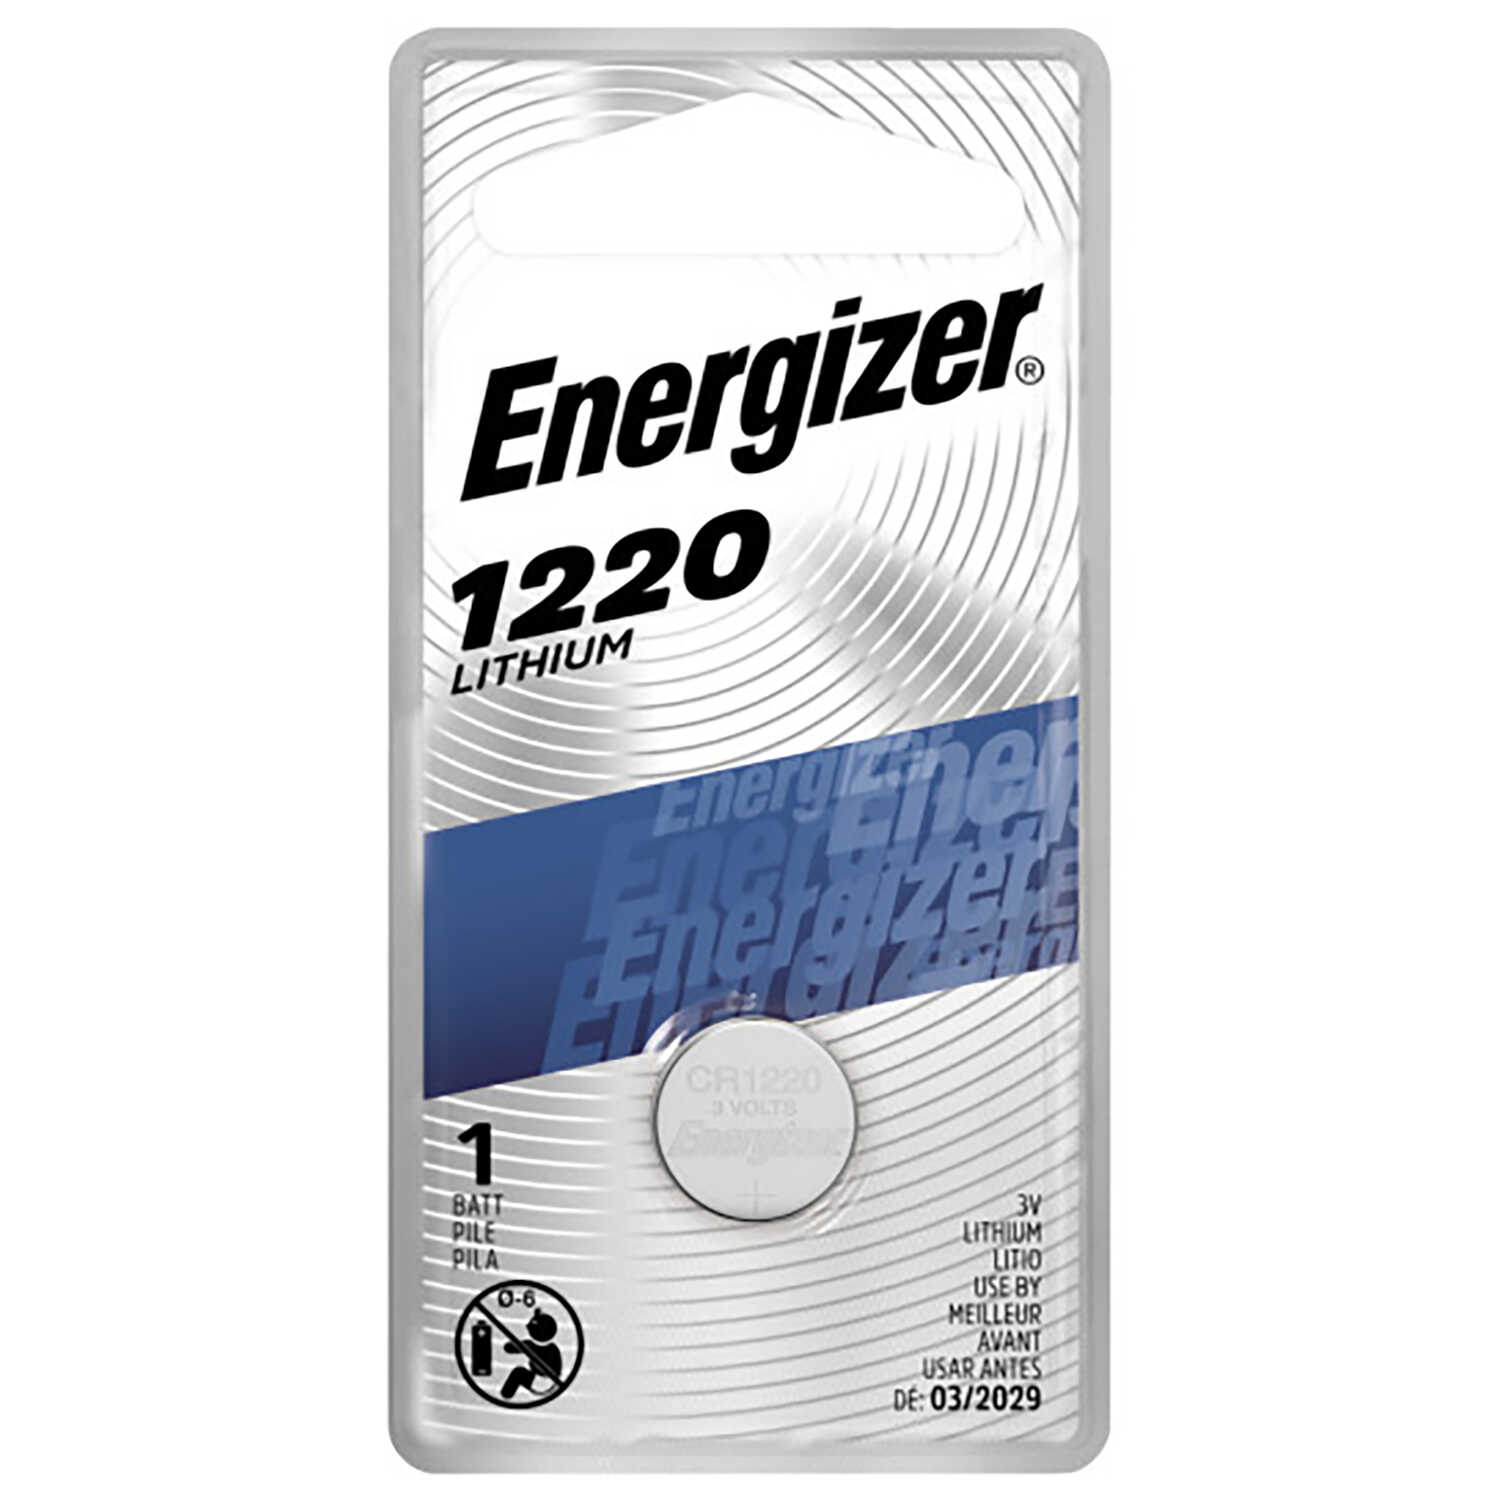 Energizer  Lithium  1220  3 volt Keyless Entry Battery  1 pk